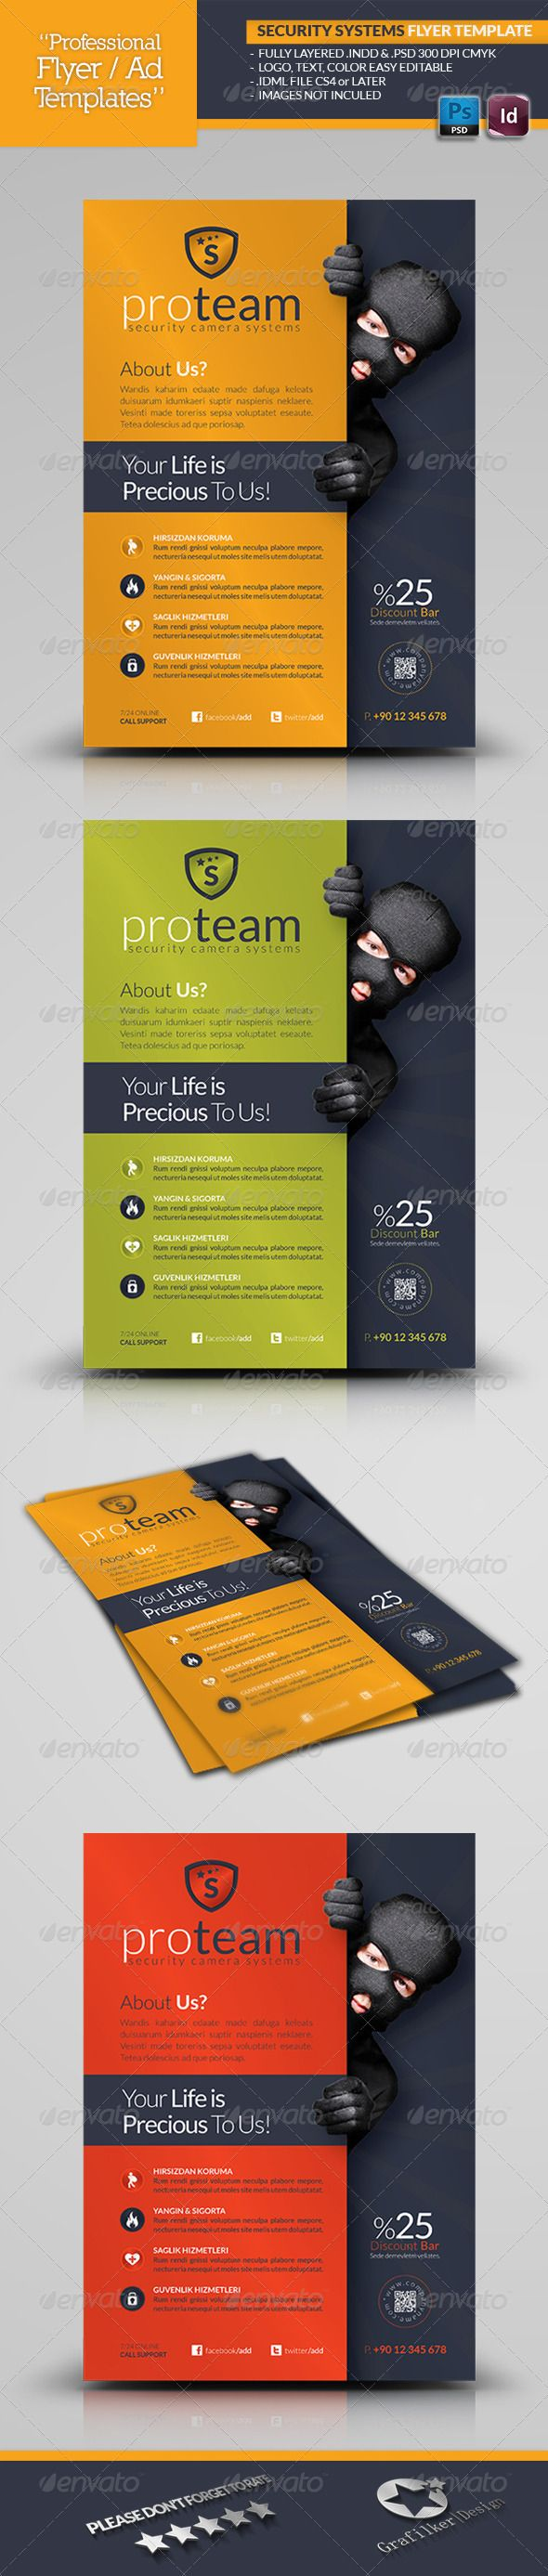 security systems flyer template design pinterest flyer